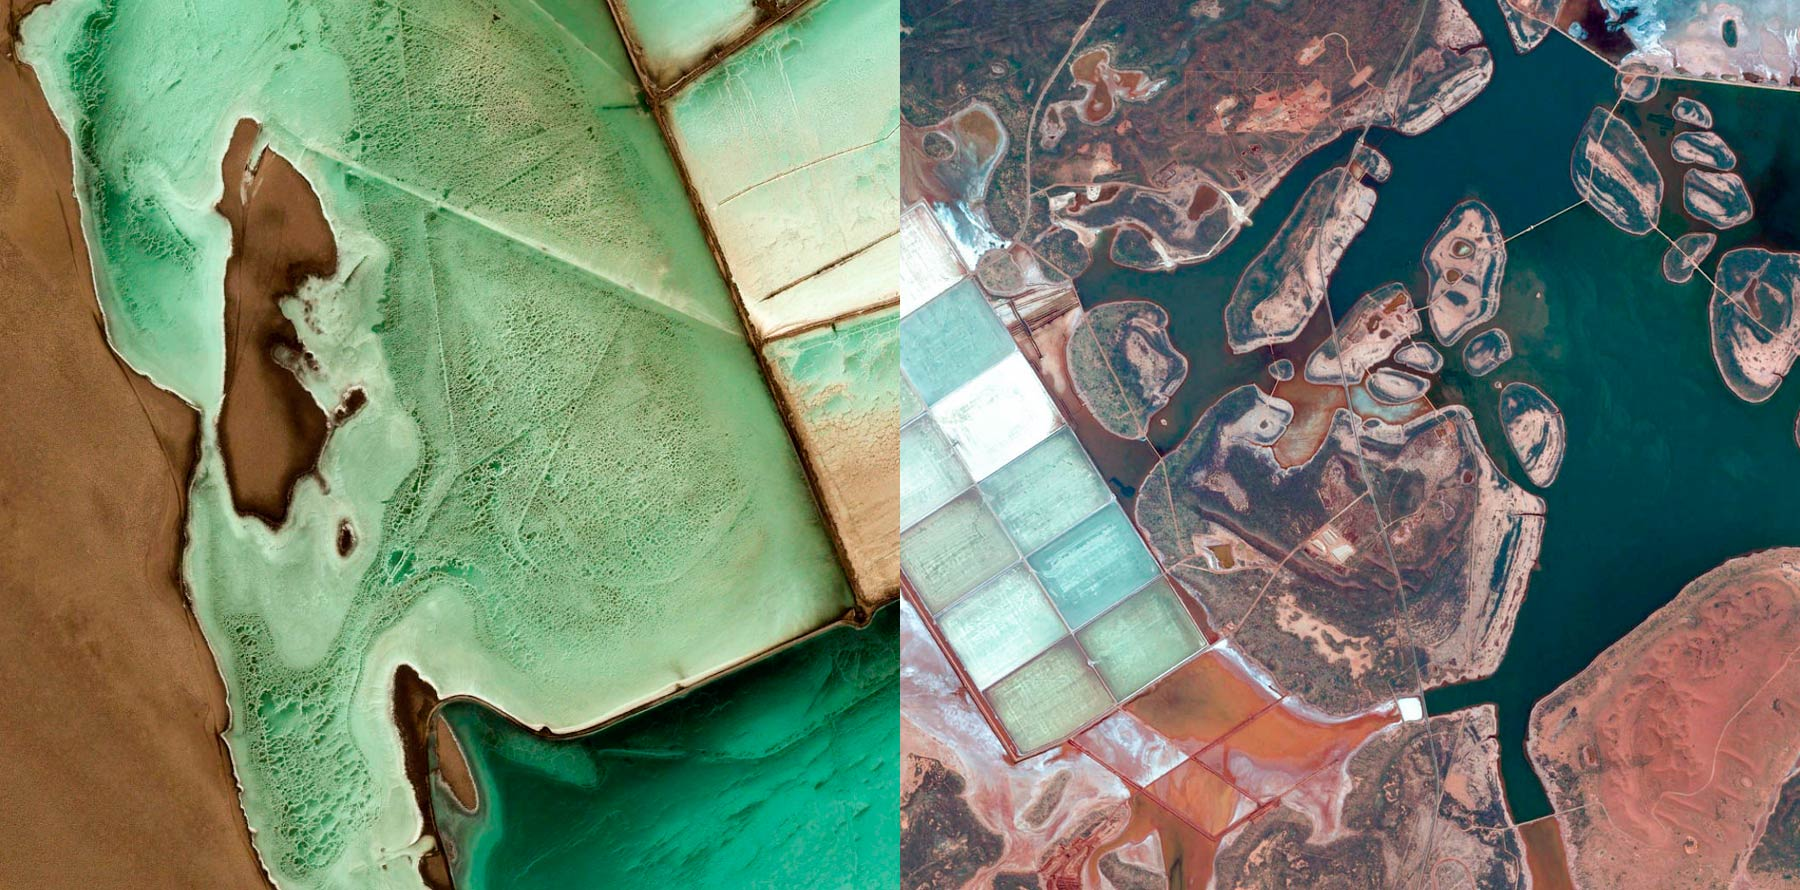 Landscape satellite view, with organic shapes